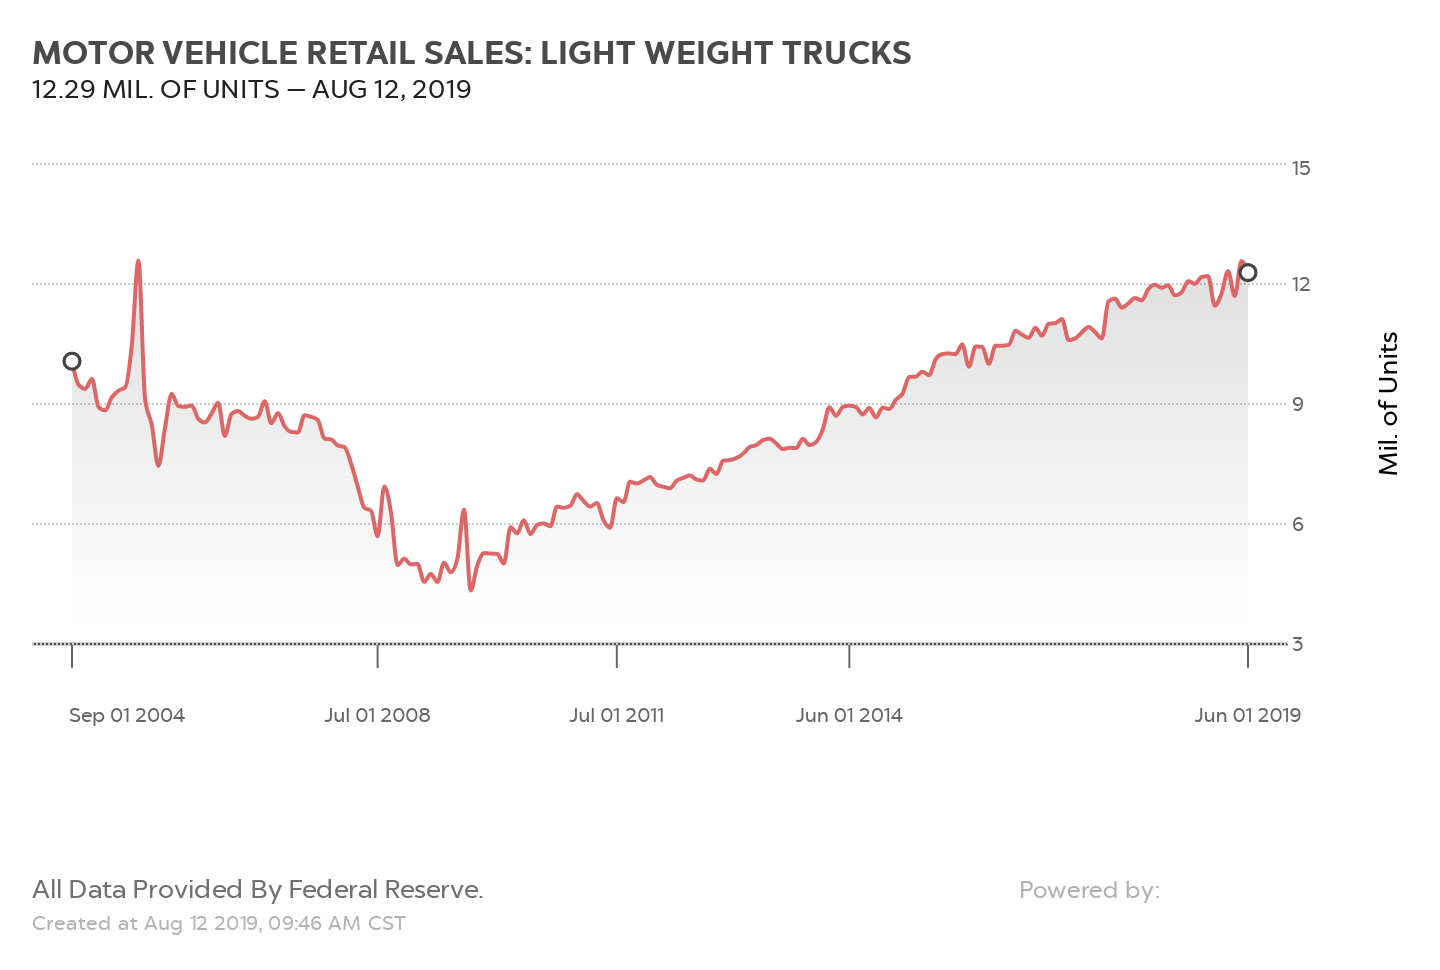 MOTOR VEHICLE RETAIL SALES: LIGHT WEIGHT TRUCKS